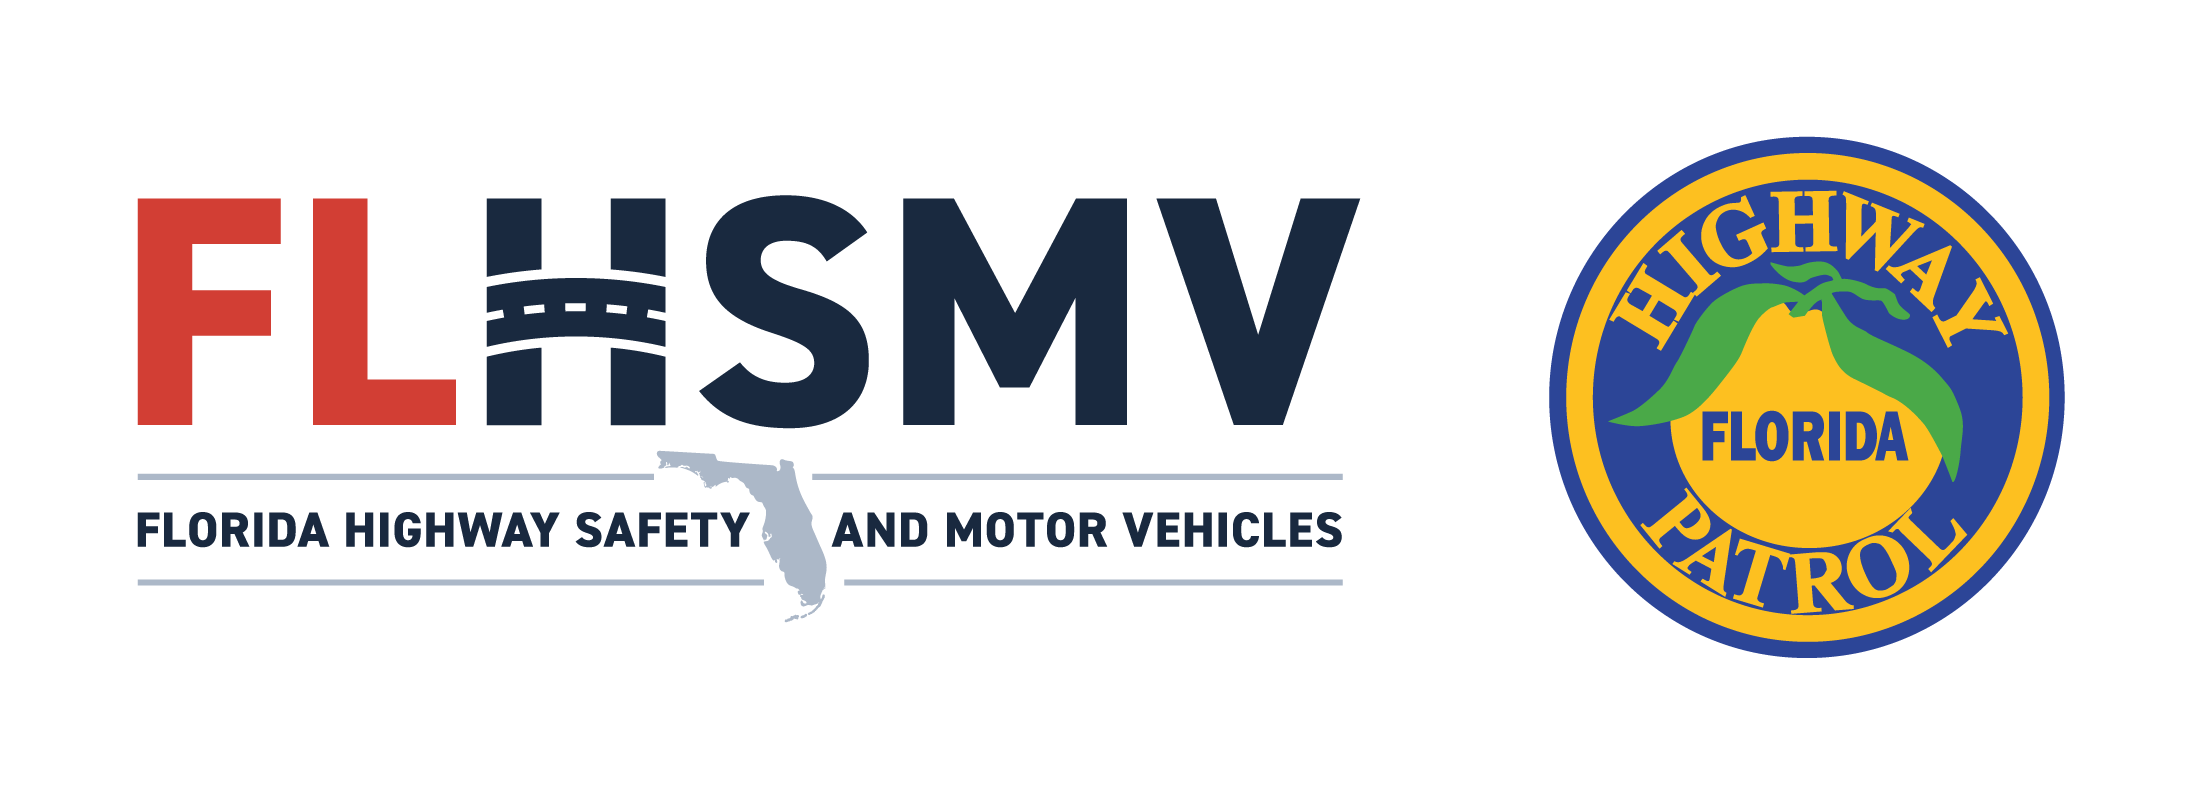 Florida Department of Highway Safety & Motor Vehicles